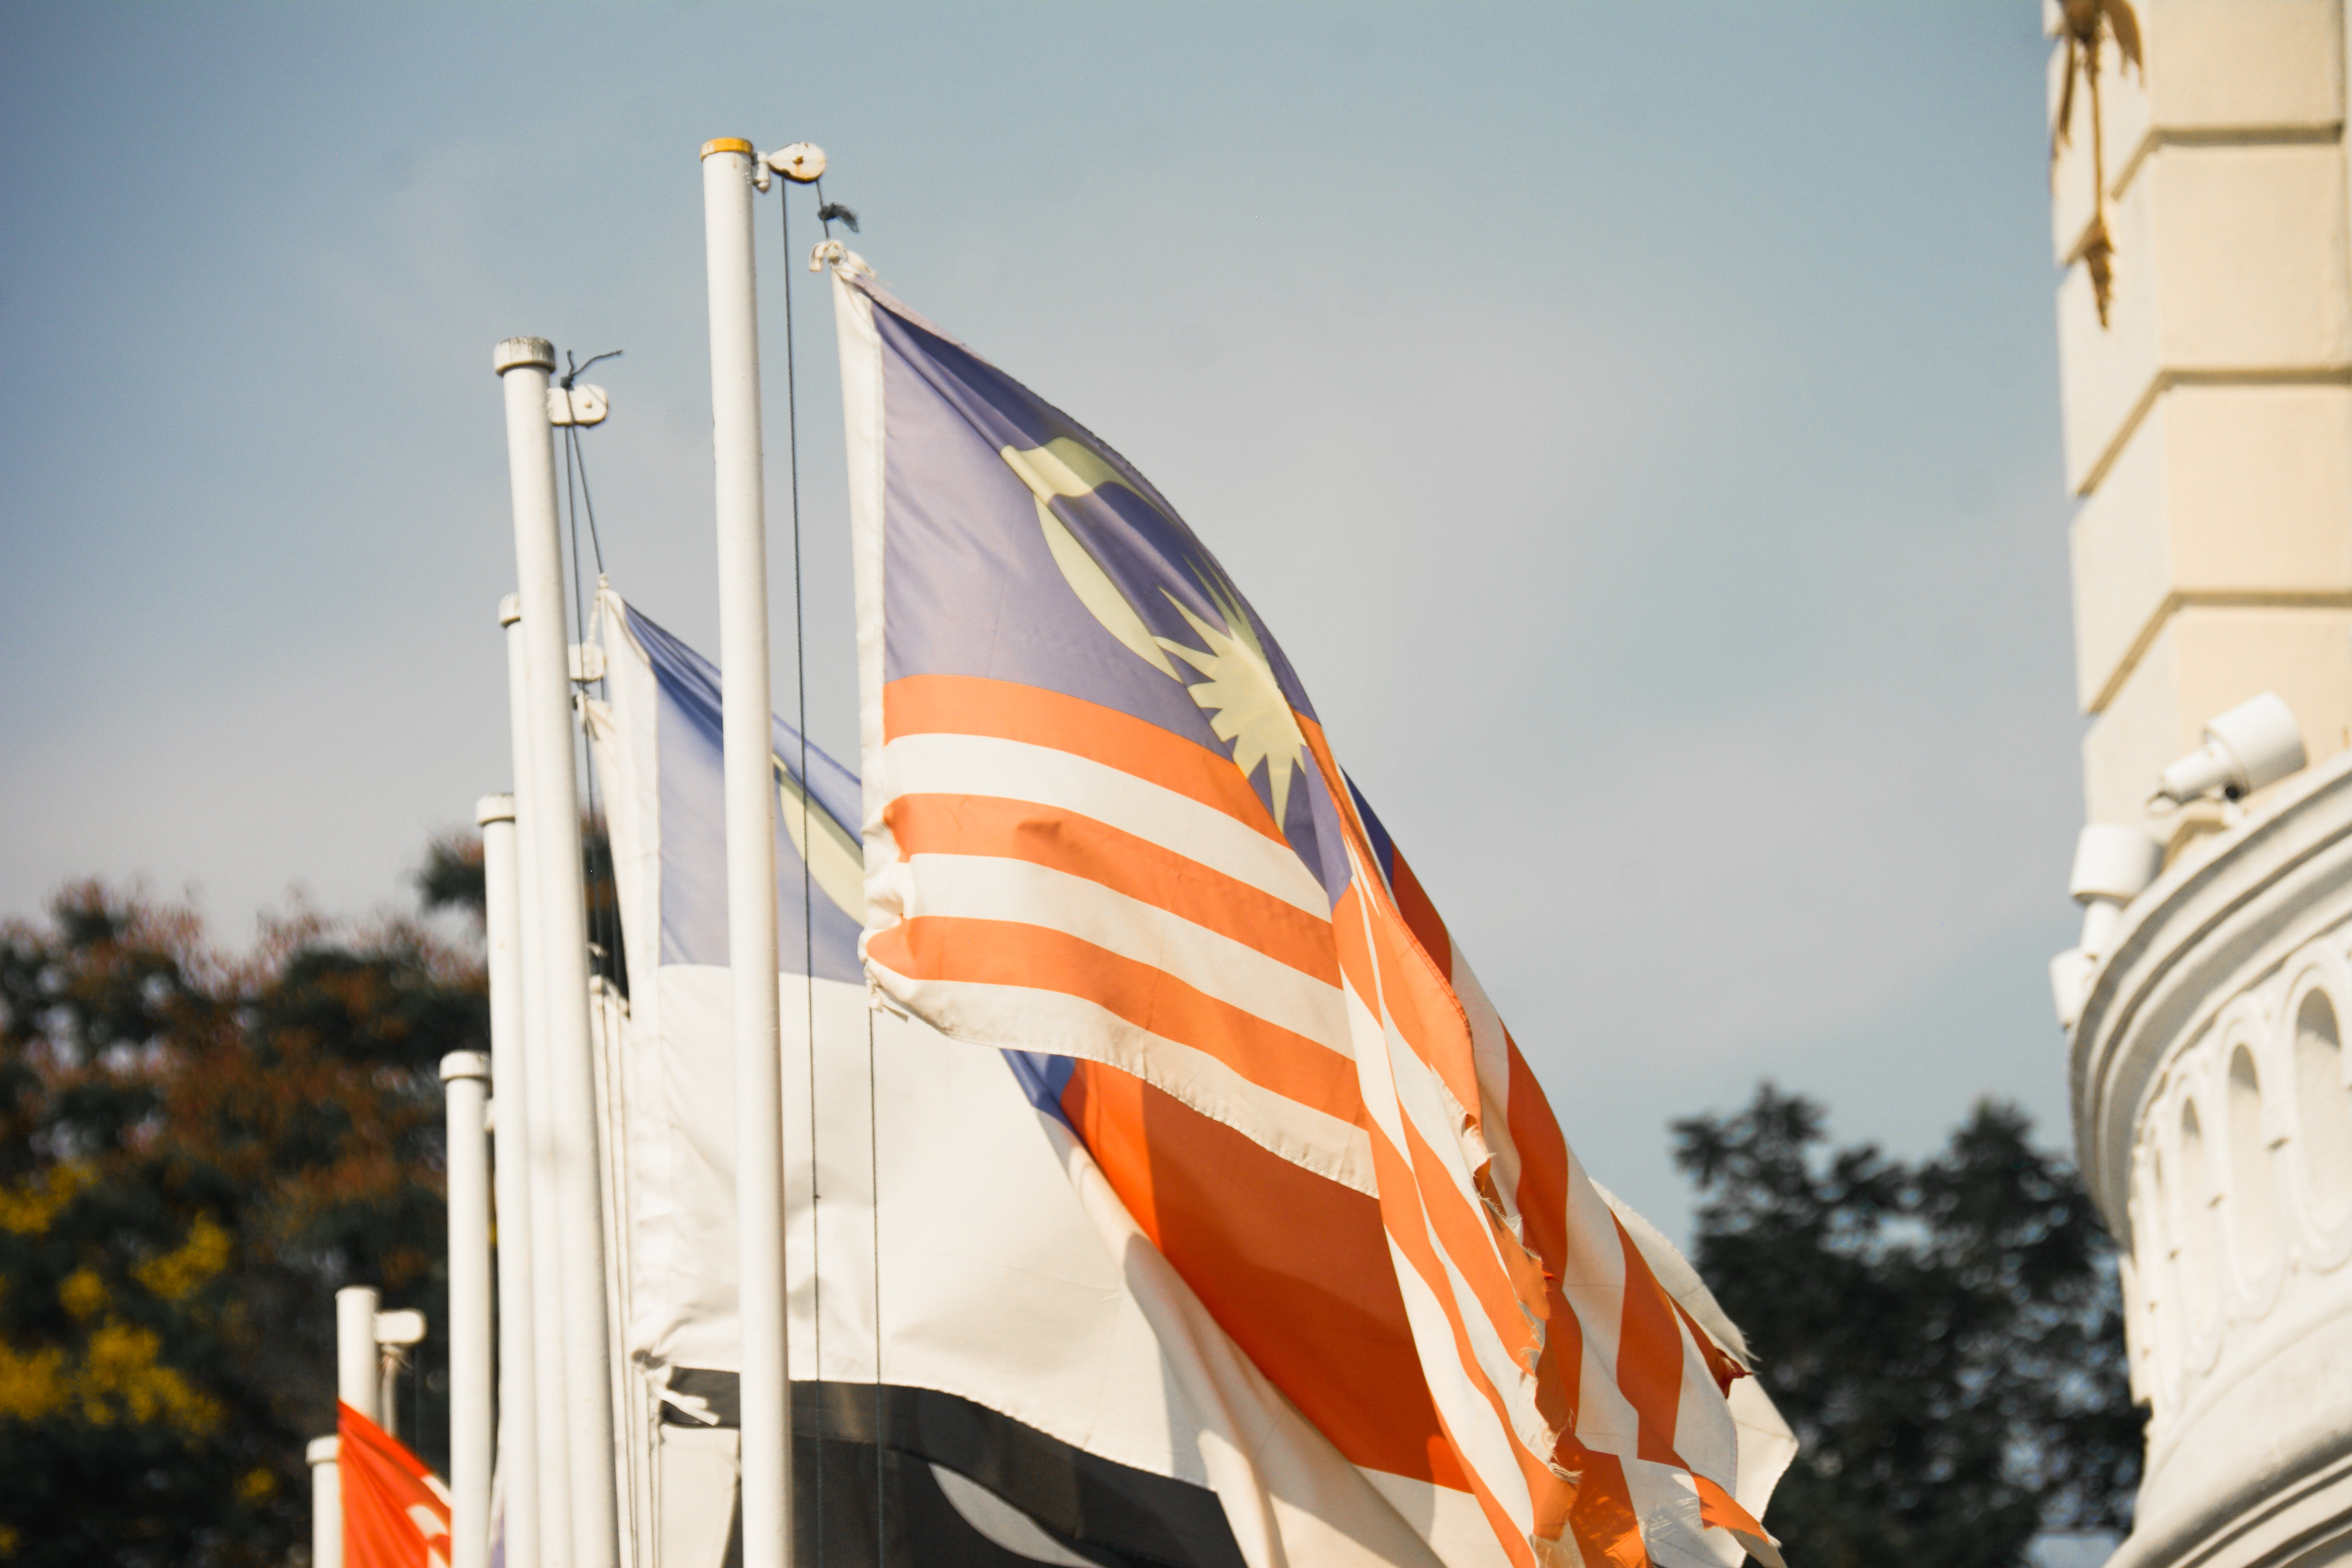 Free stock photo of BENDERA, bendera berkibar, benderamalaysia, benderamelaka